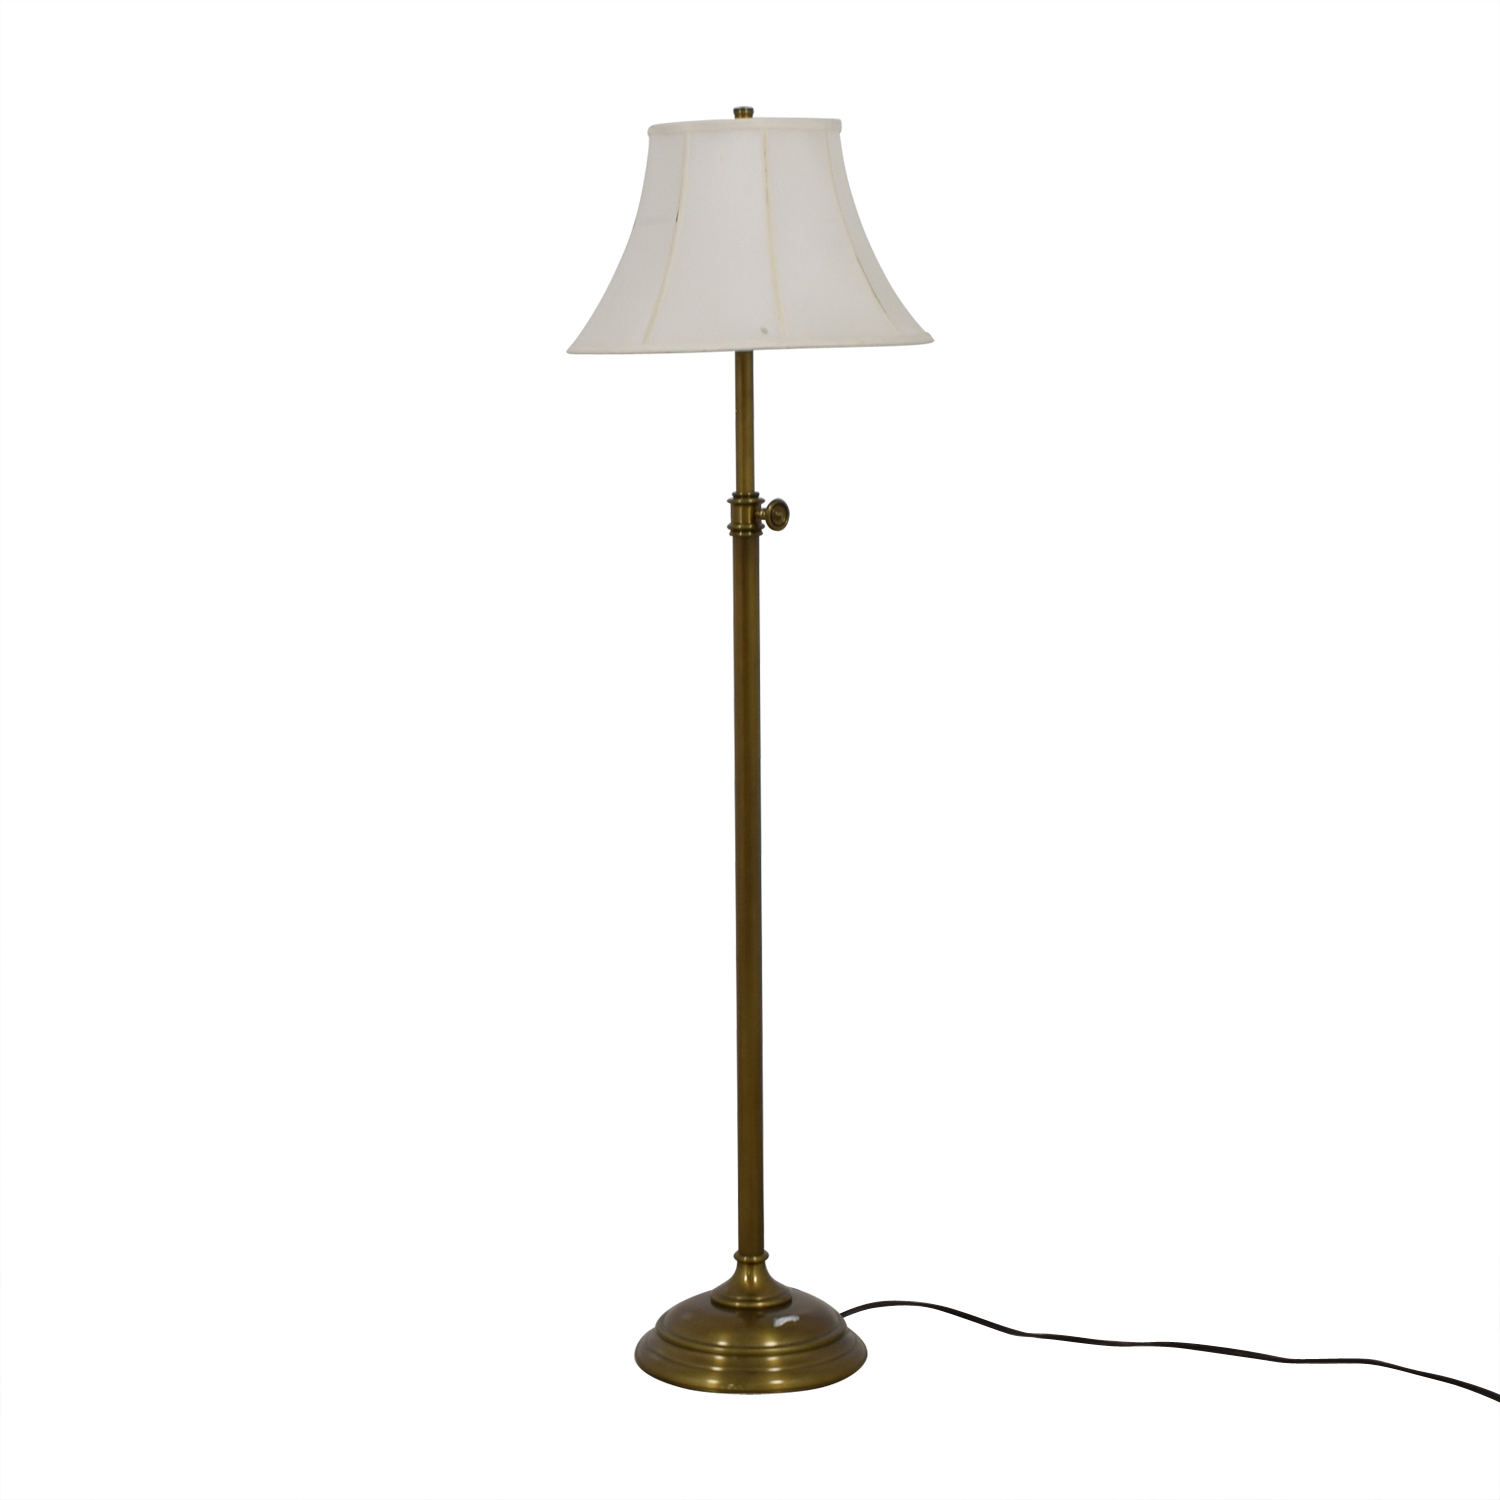 shop Pottery Barn Chelsea Antique Brass Floor Lamp Pottery Barn Decor